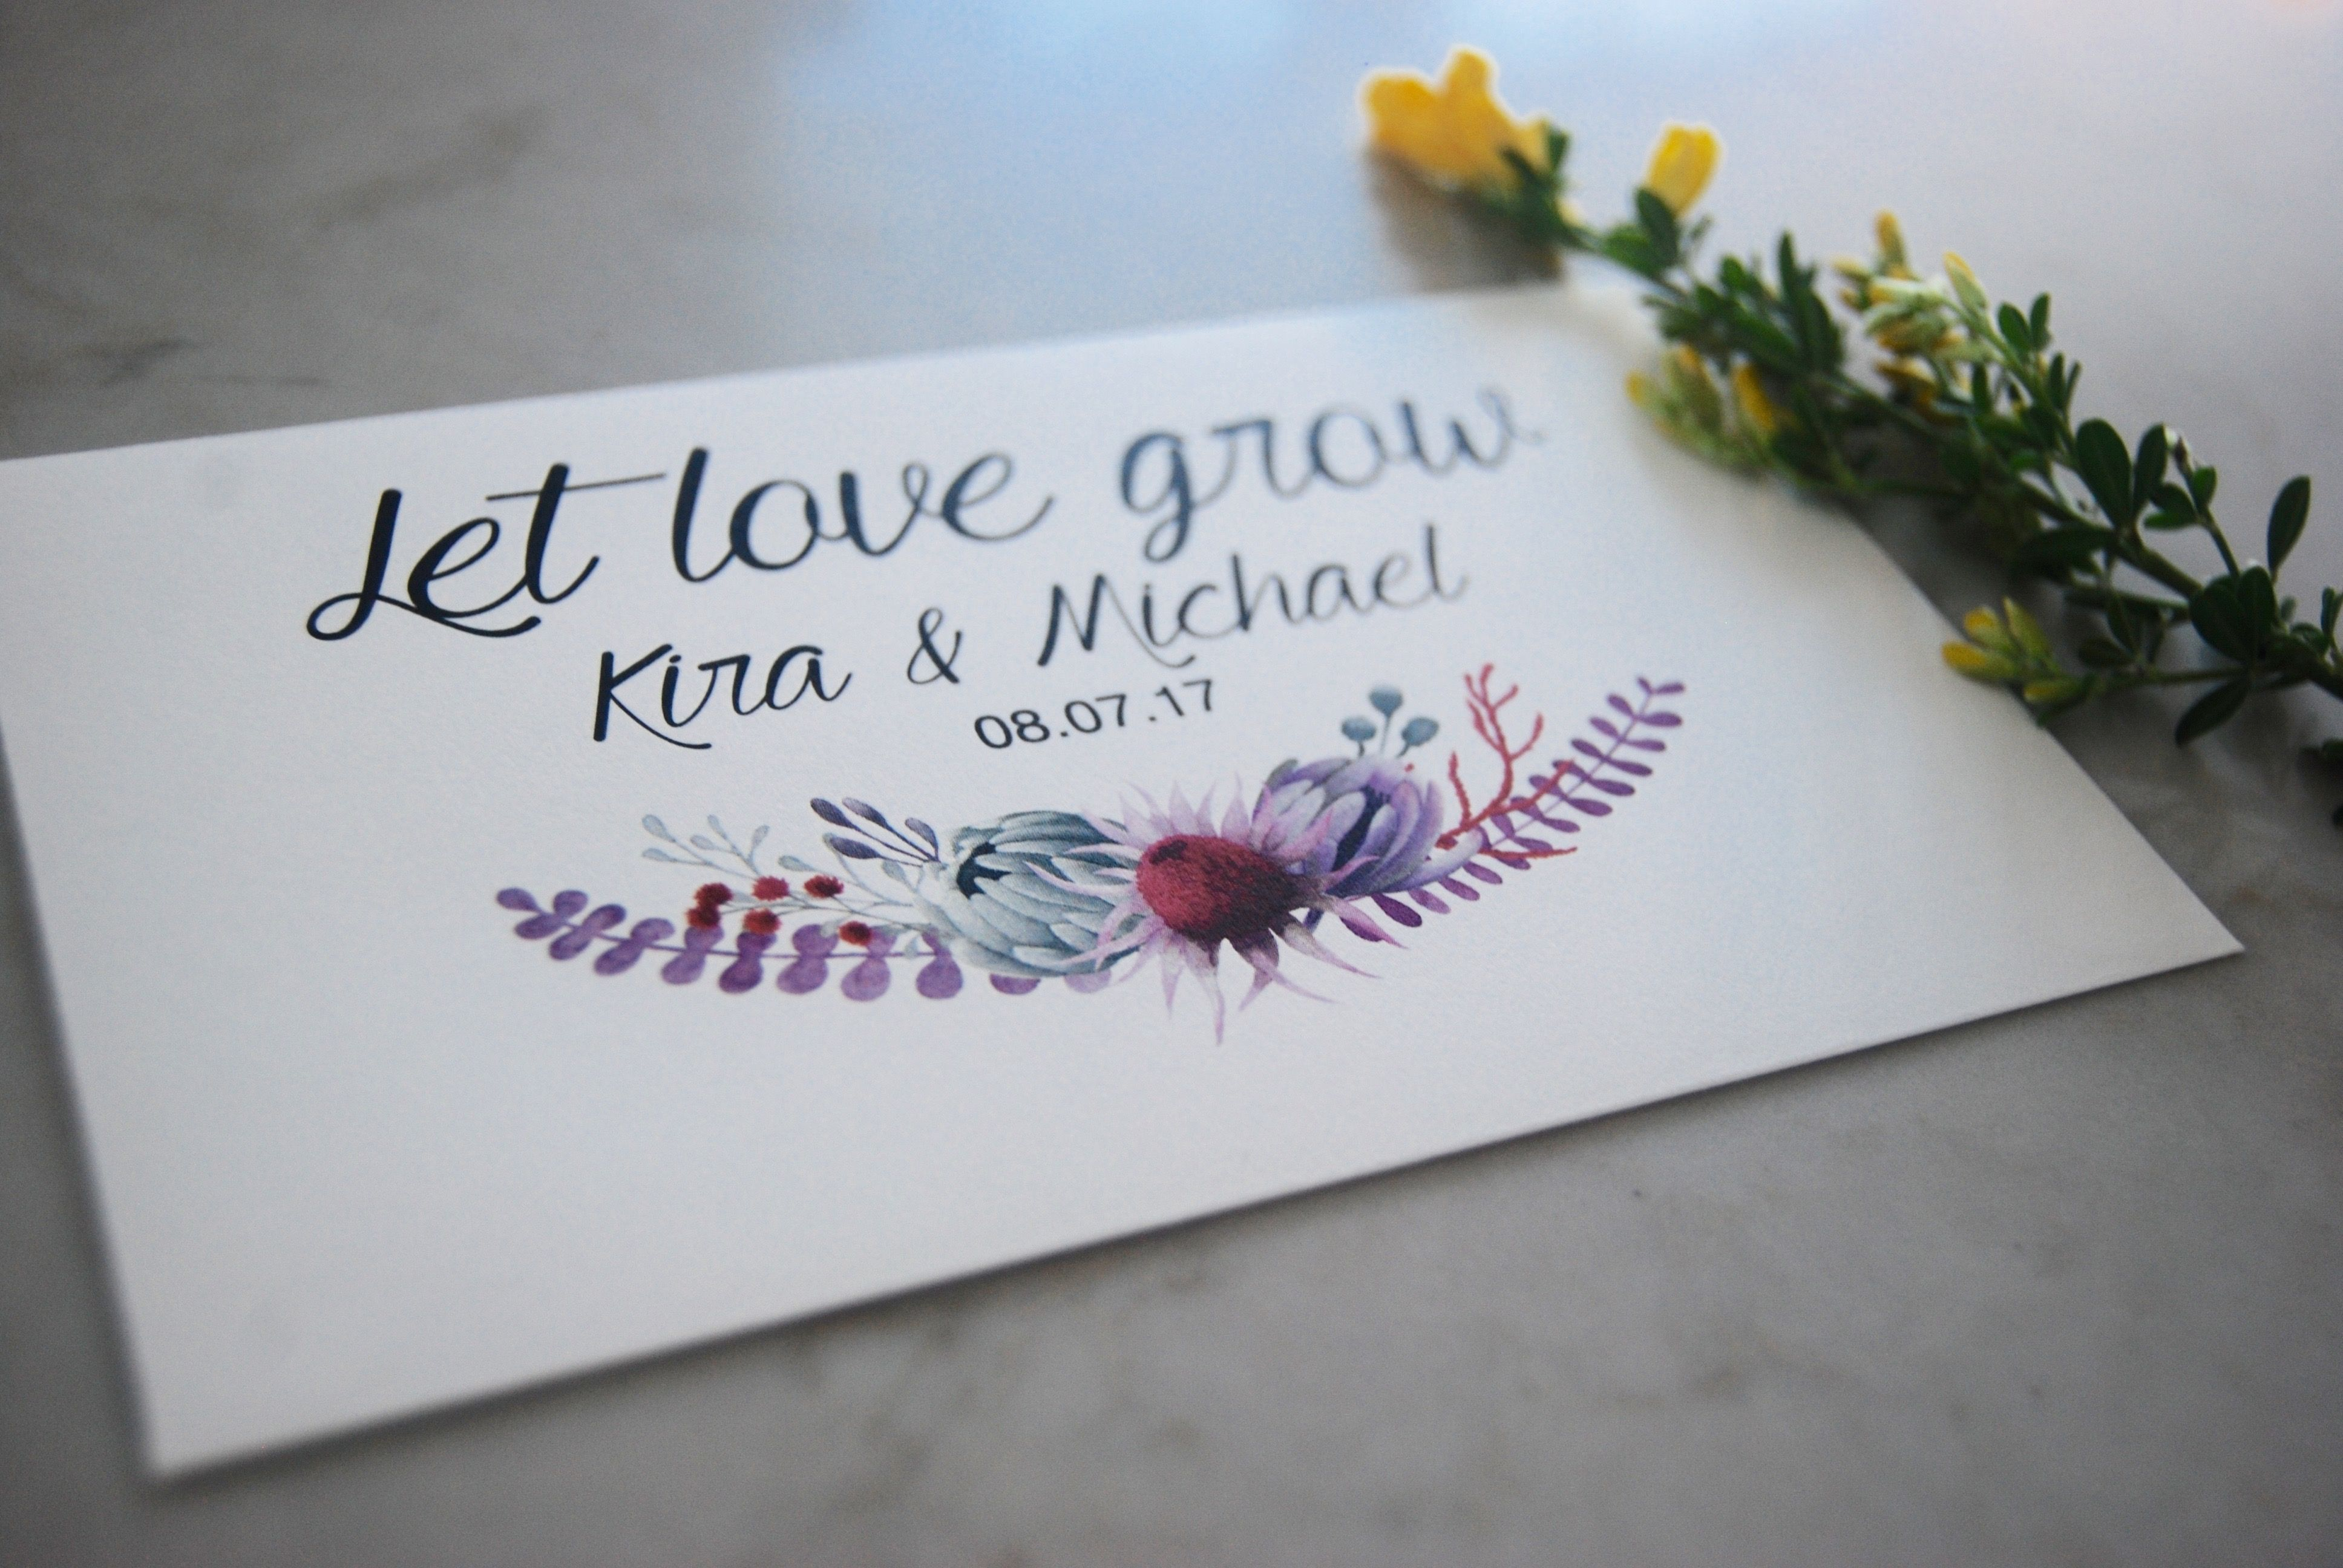 Let love grow! Envelopes come custom printed with your details ...